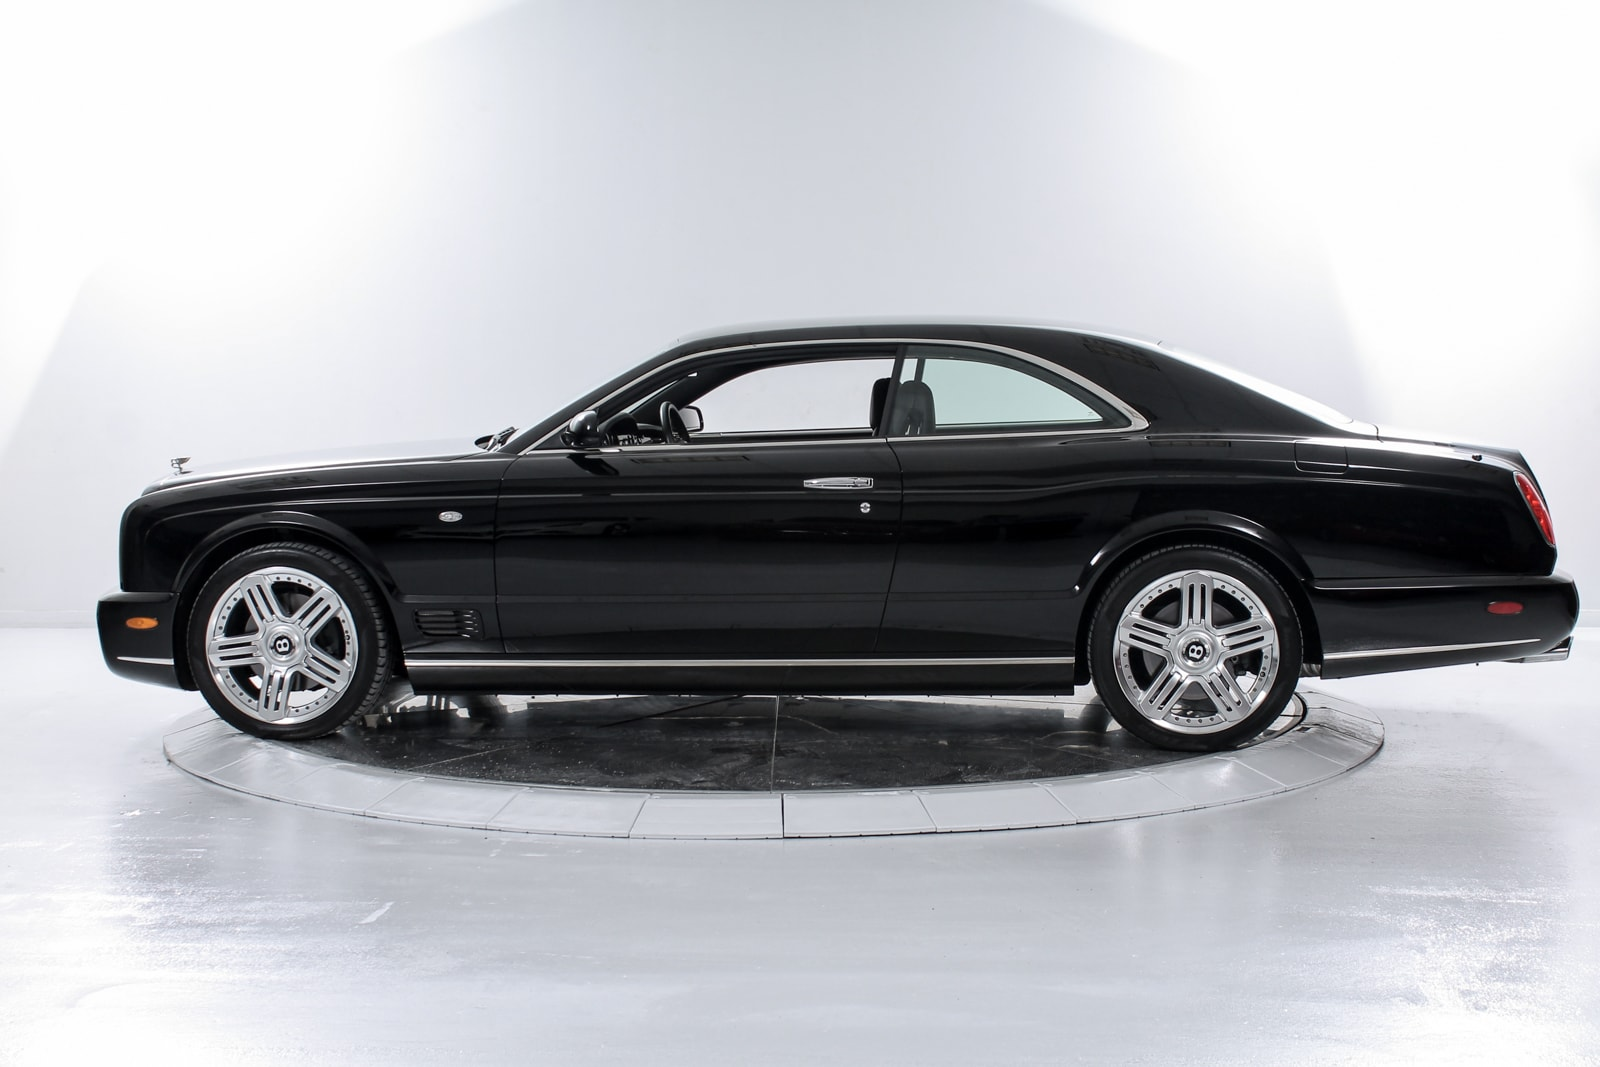 Used 2009 Bentley Brooklands In Black For Sale In Nyc